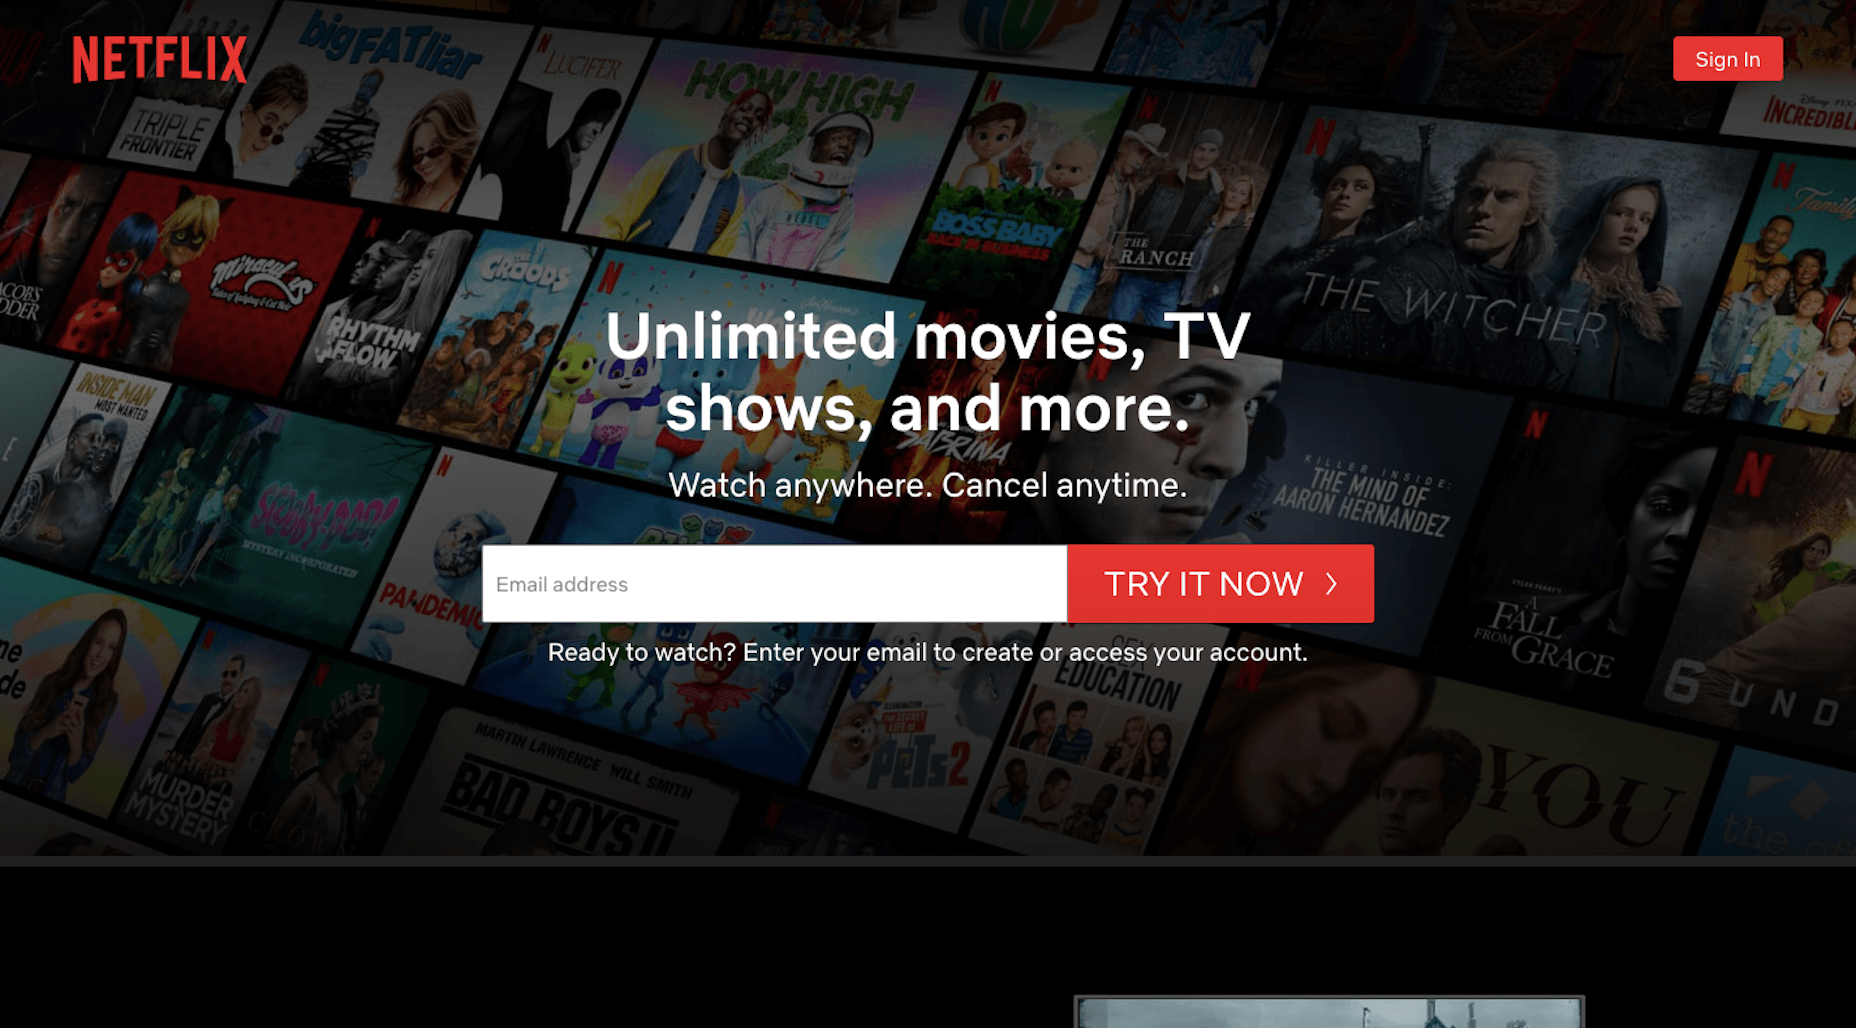 Netflix UX Lessons - Make Onboarding Painless